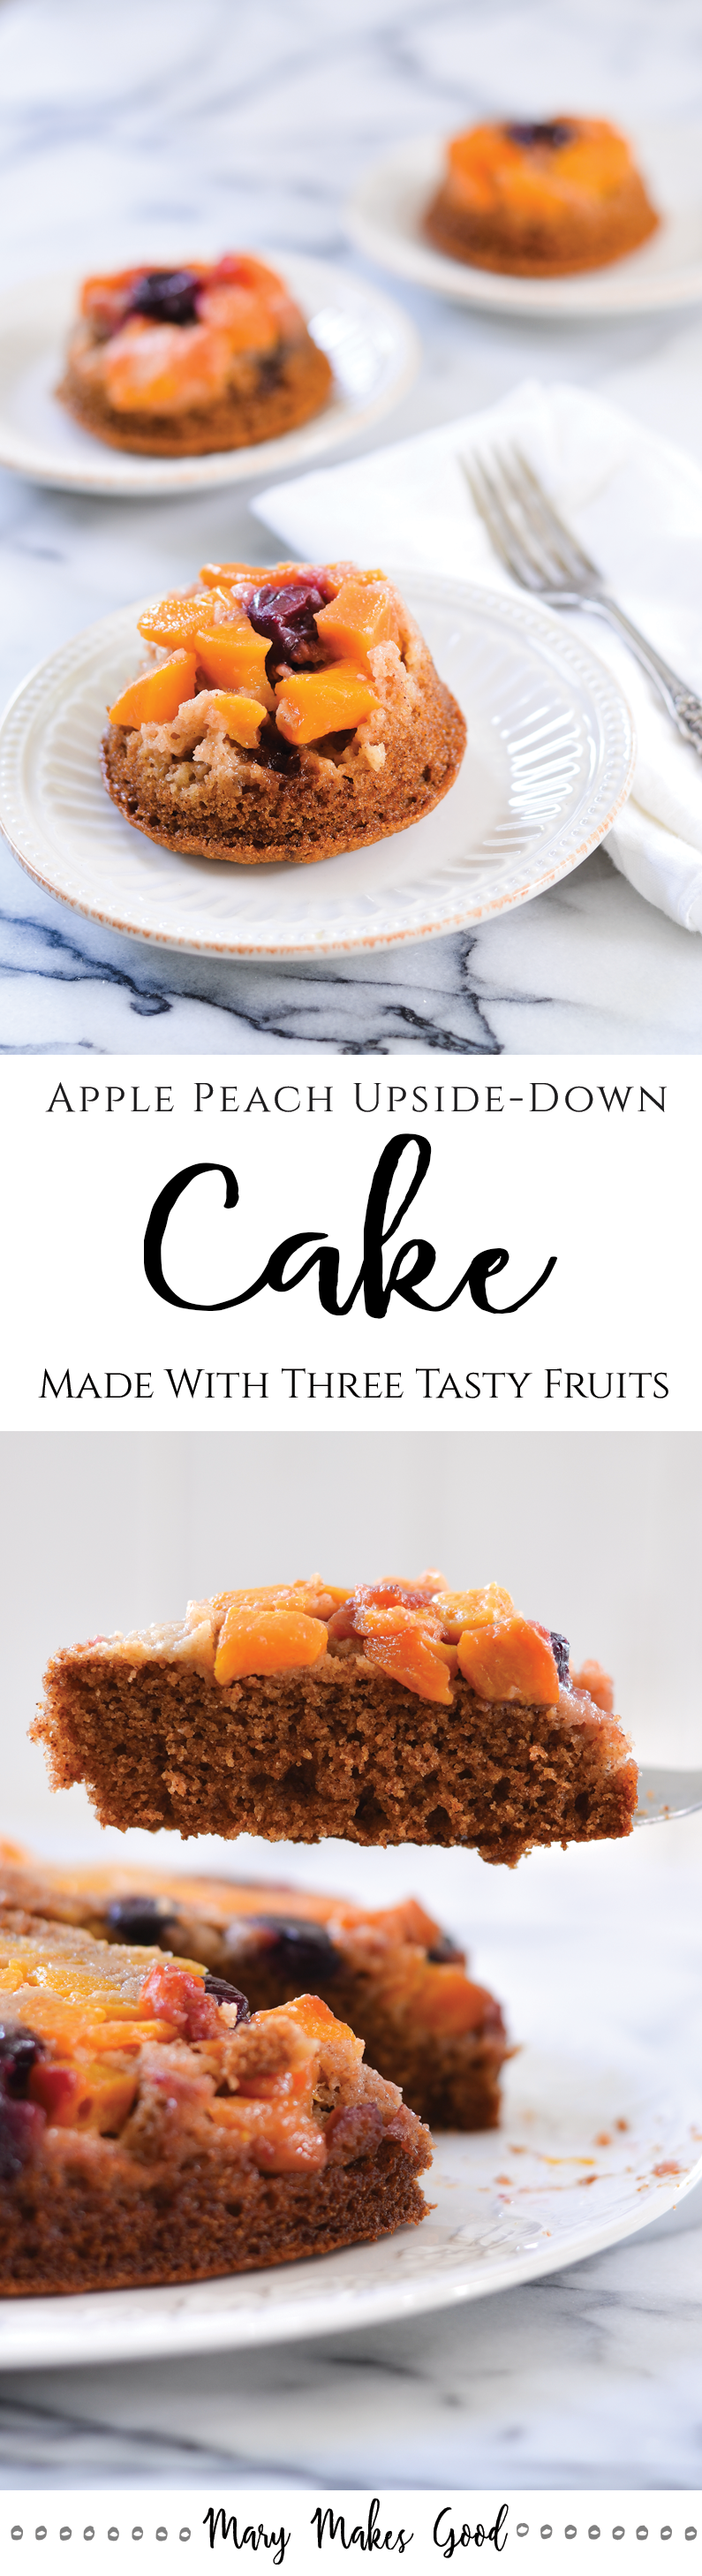 An easy recipe for Apple Peach Upside Down Cake